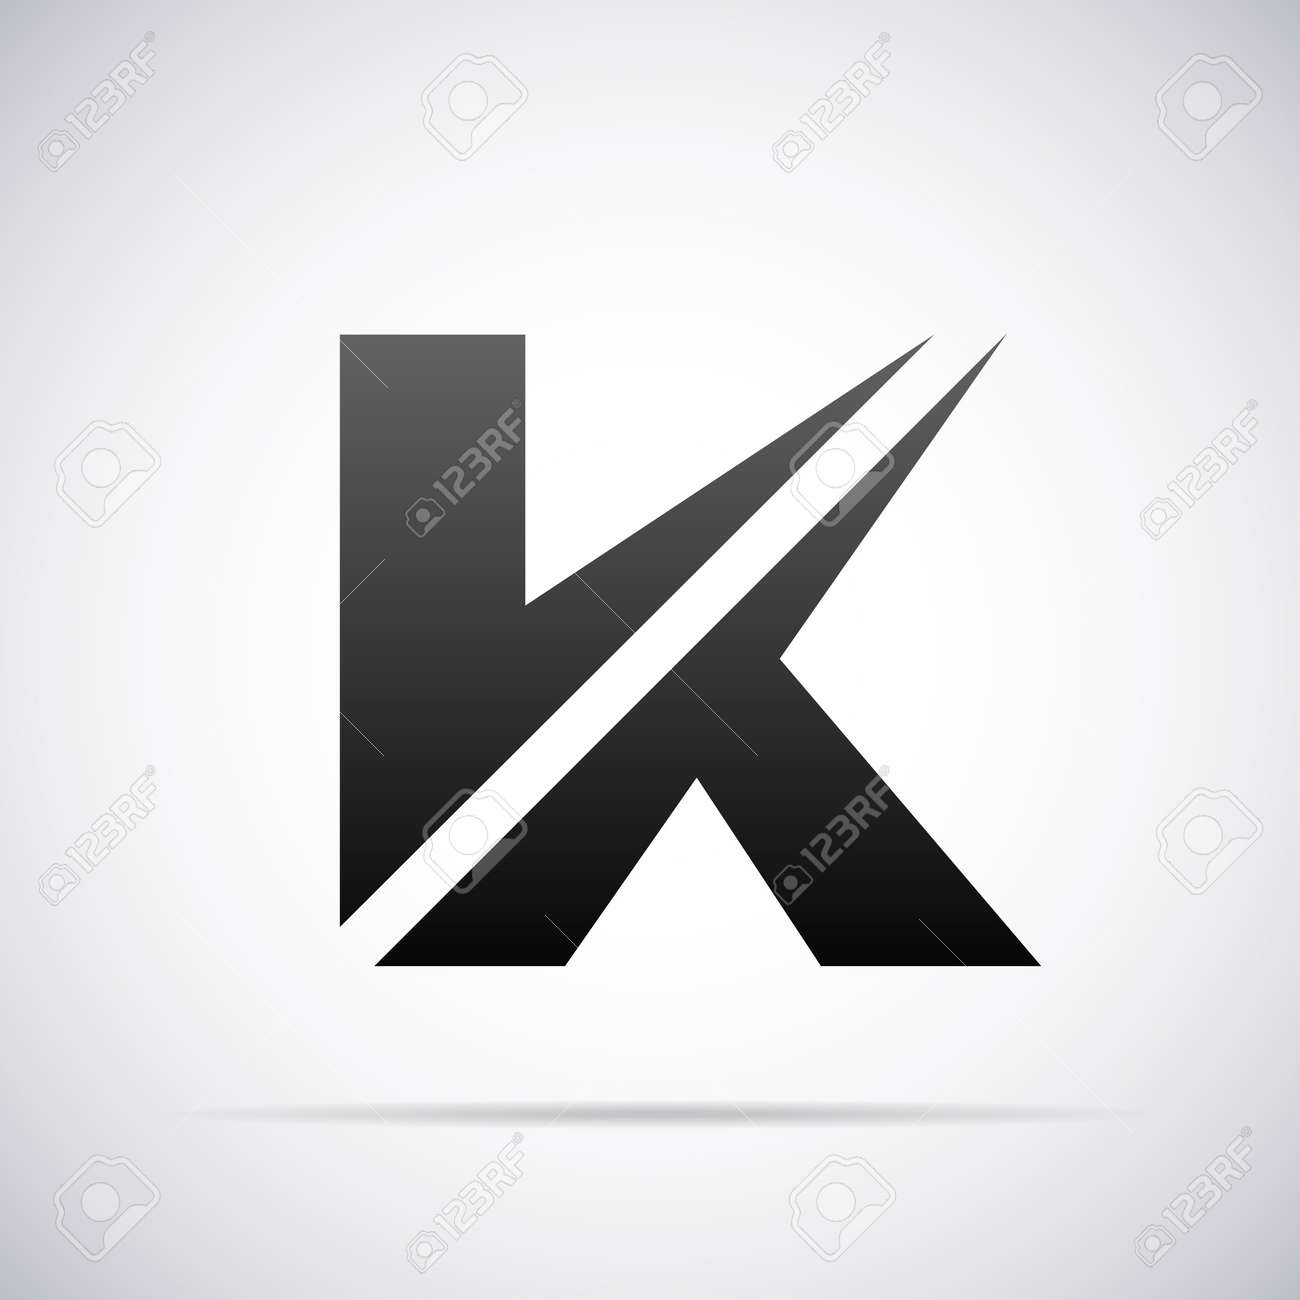 Letter k design template vector illustration royalty free cliparts letter k design template vector illustration stock vector 40297719 spiritdancerdesigns Choice Image